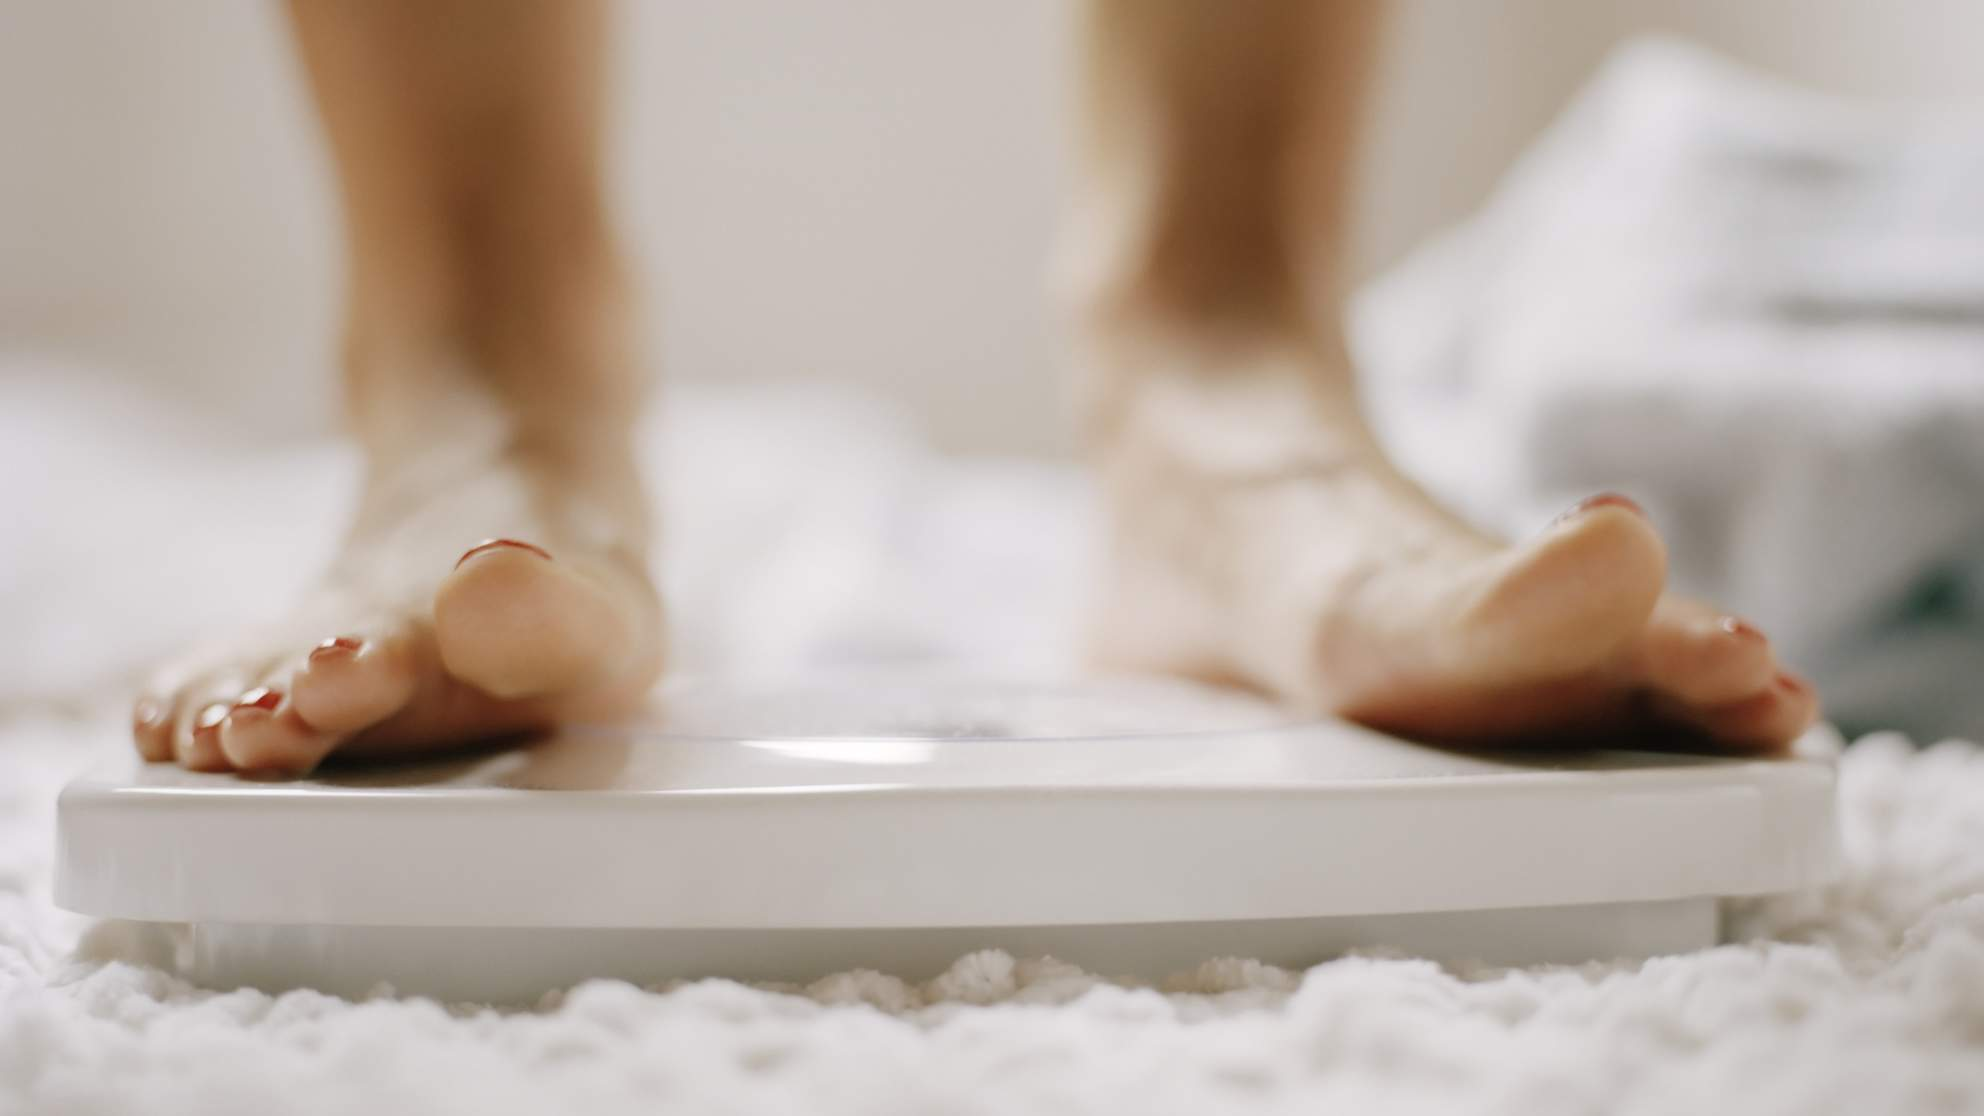 Close-up of woman's feet on scale TIME health stock